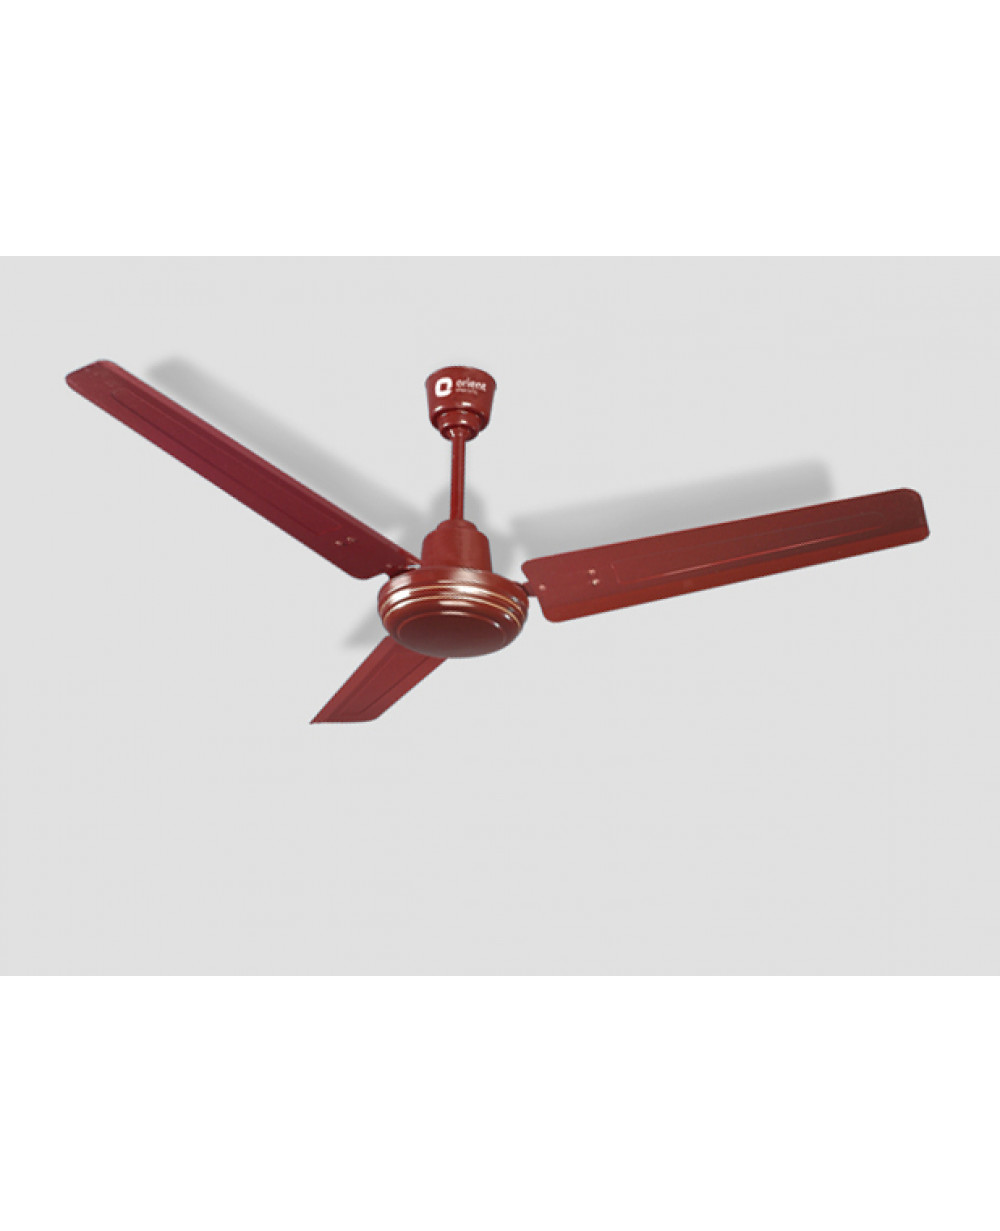 More Views Orient New Breeze 36 Inch Ceiling Fan